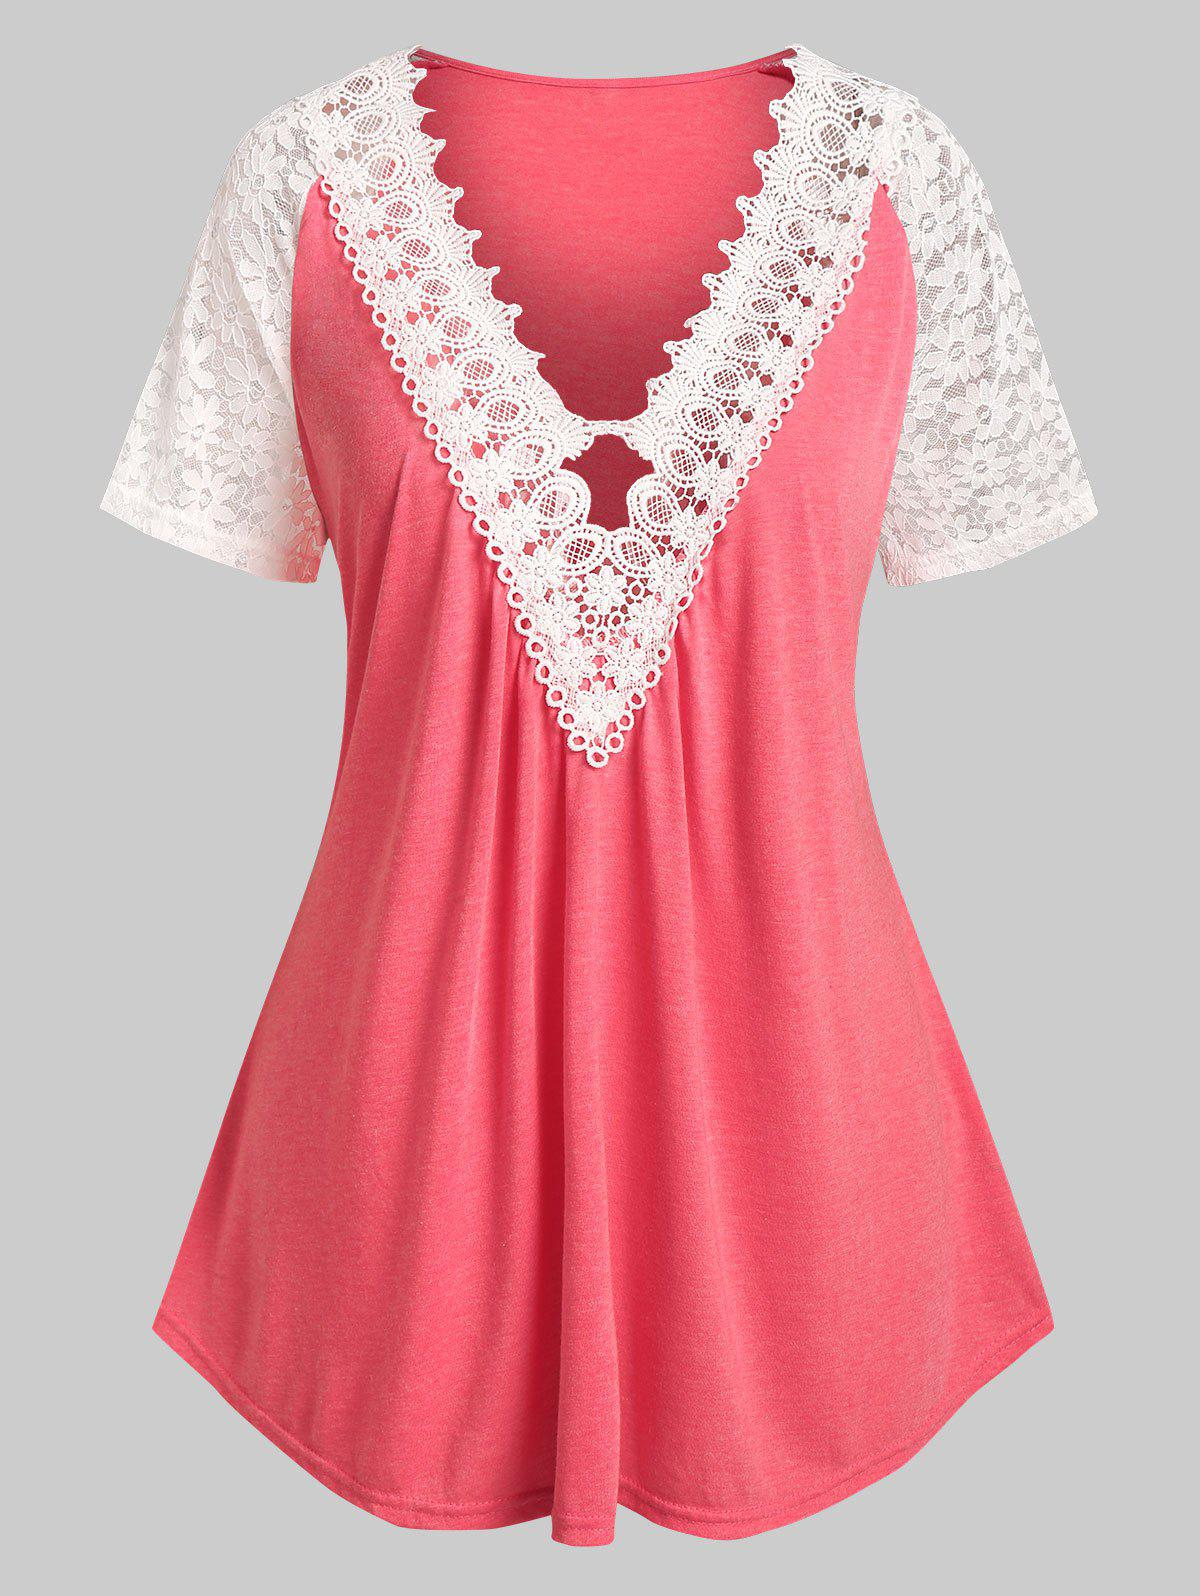 Plus Size Plunging Neck Lace Panel Tee - LIGHT PINK 5X